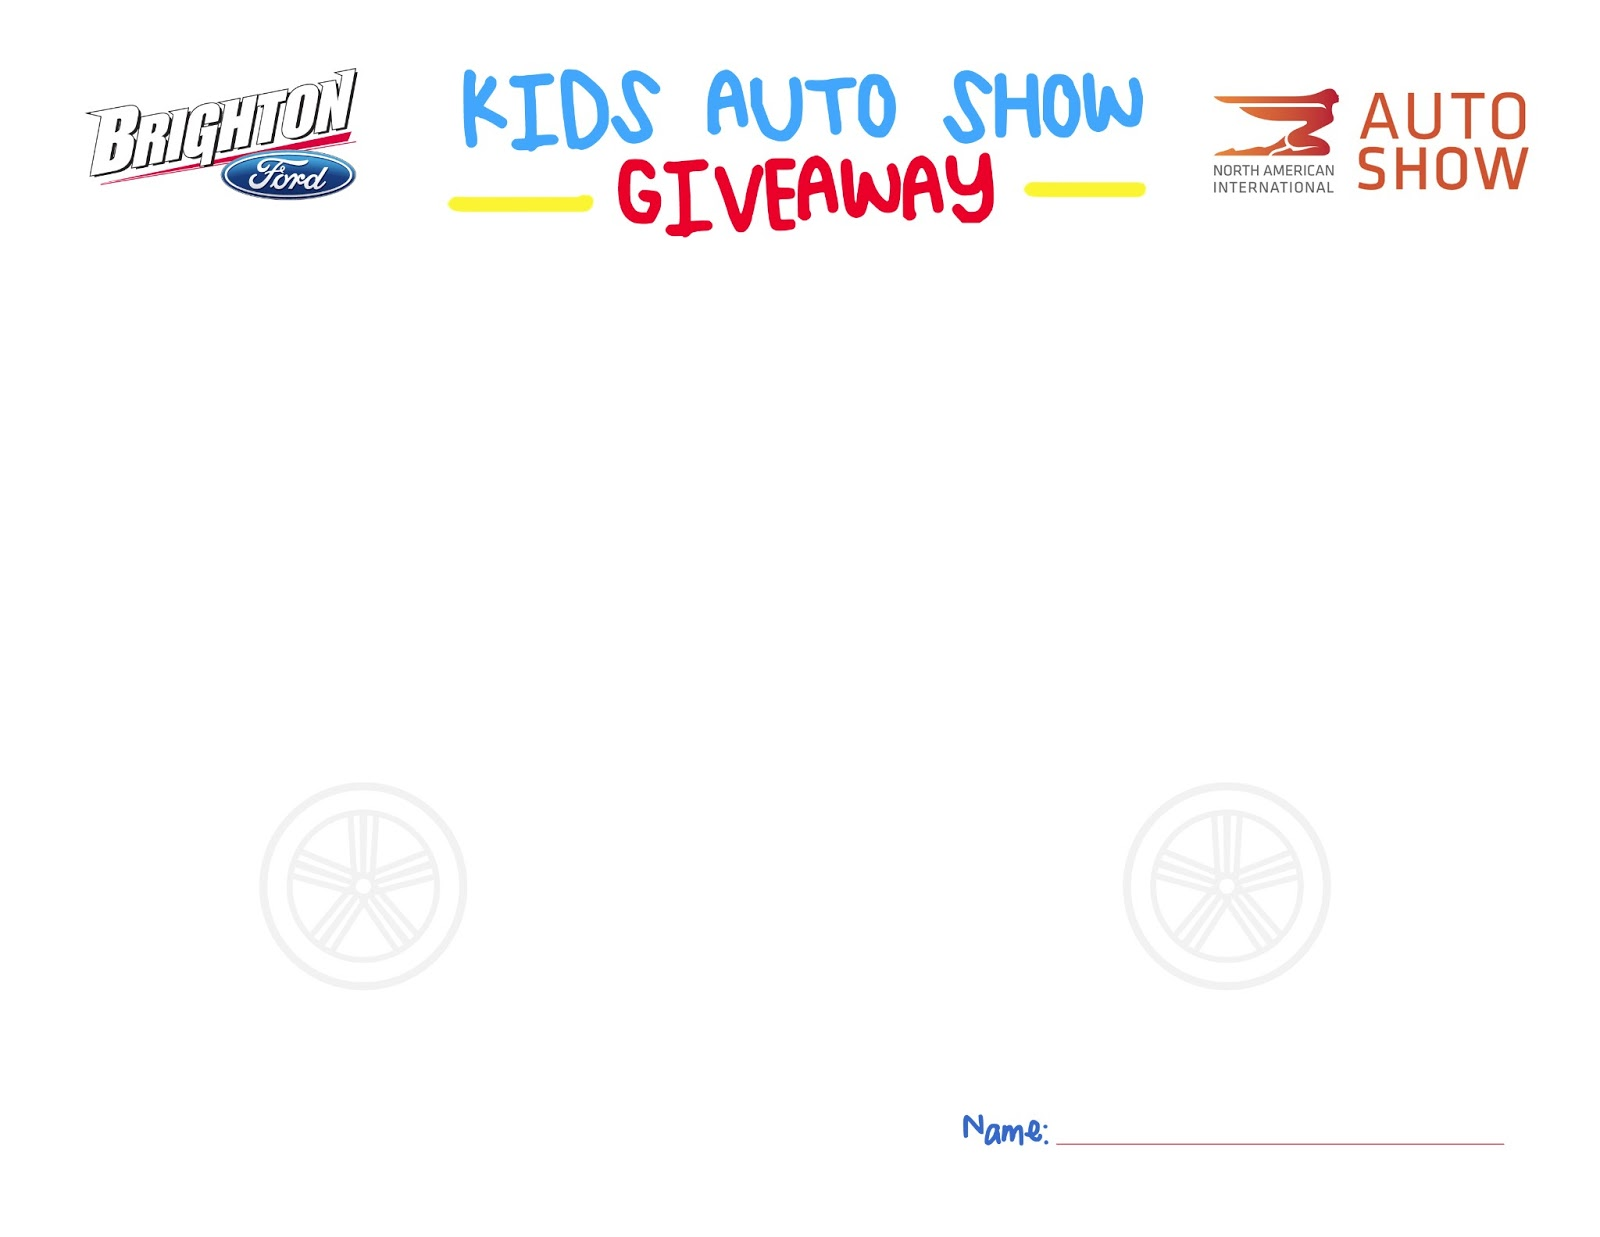 Detroit Auto Show Ticket Giveaway